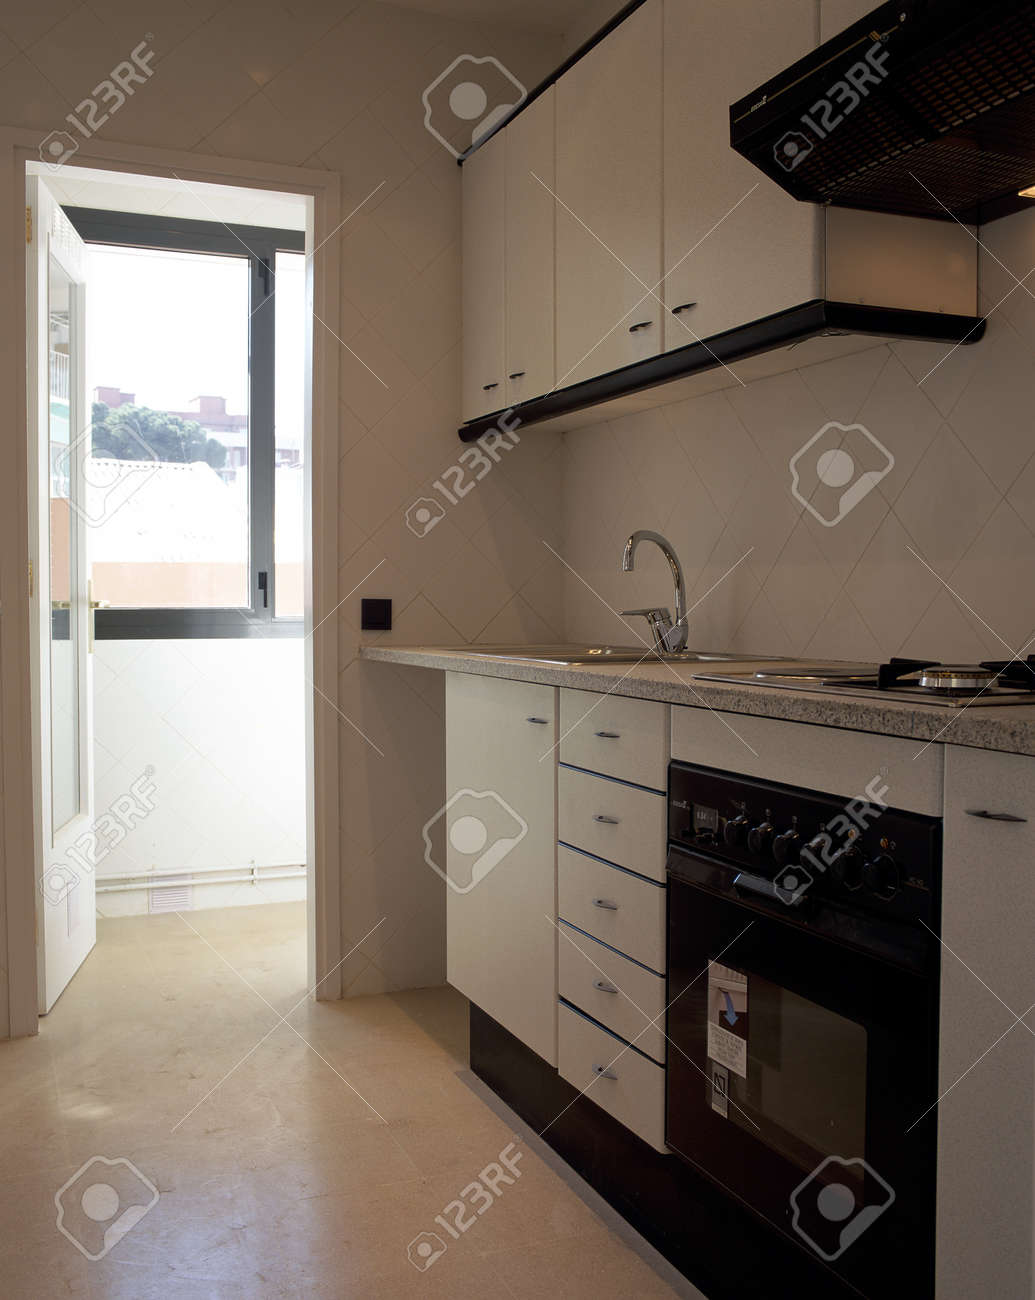 View of an eclectic kitchen Stock Photo - 7224230